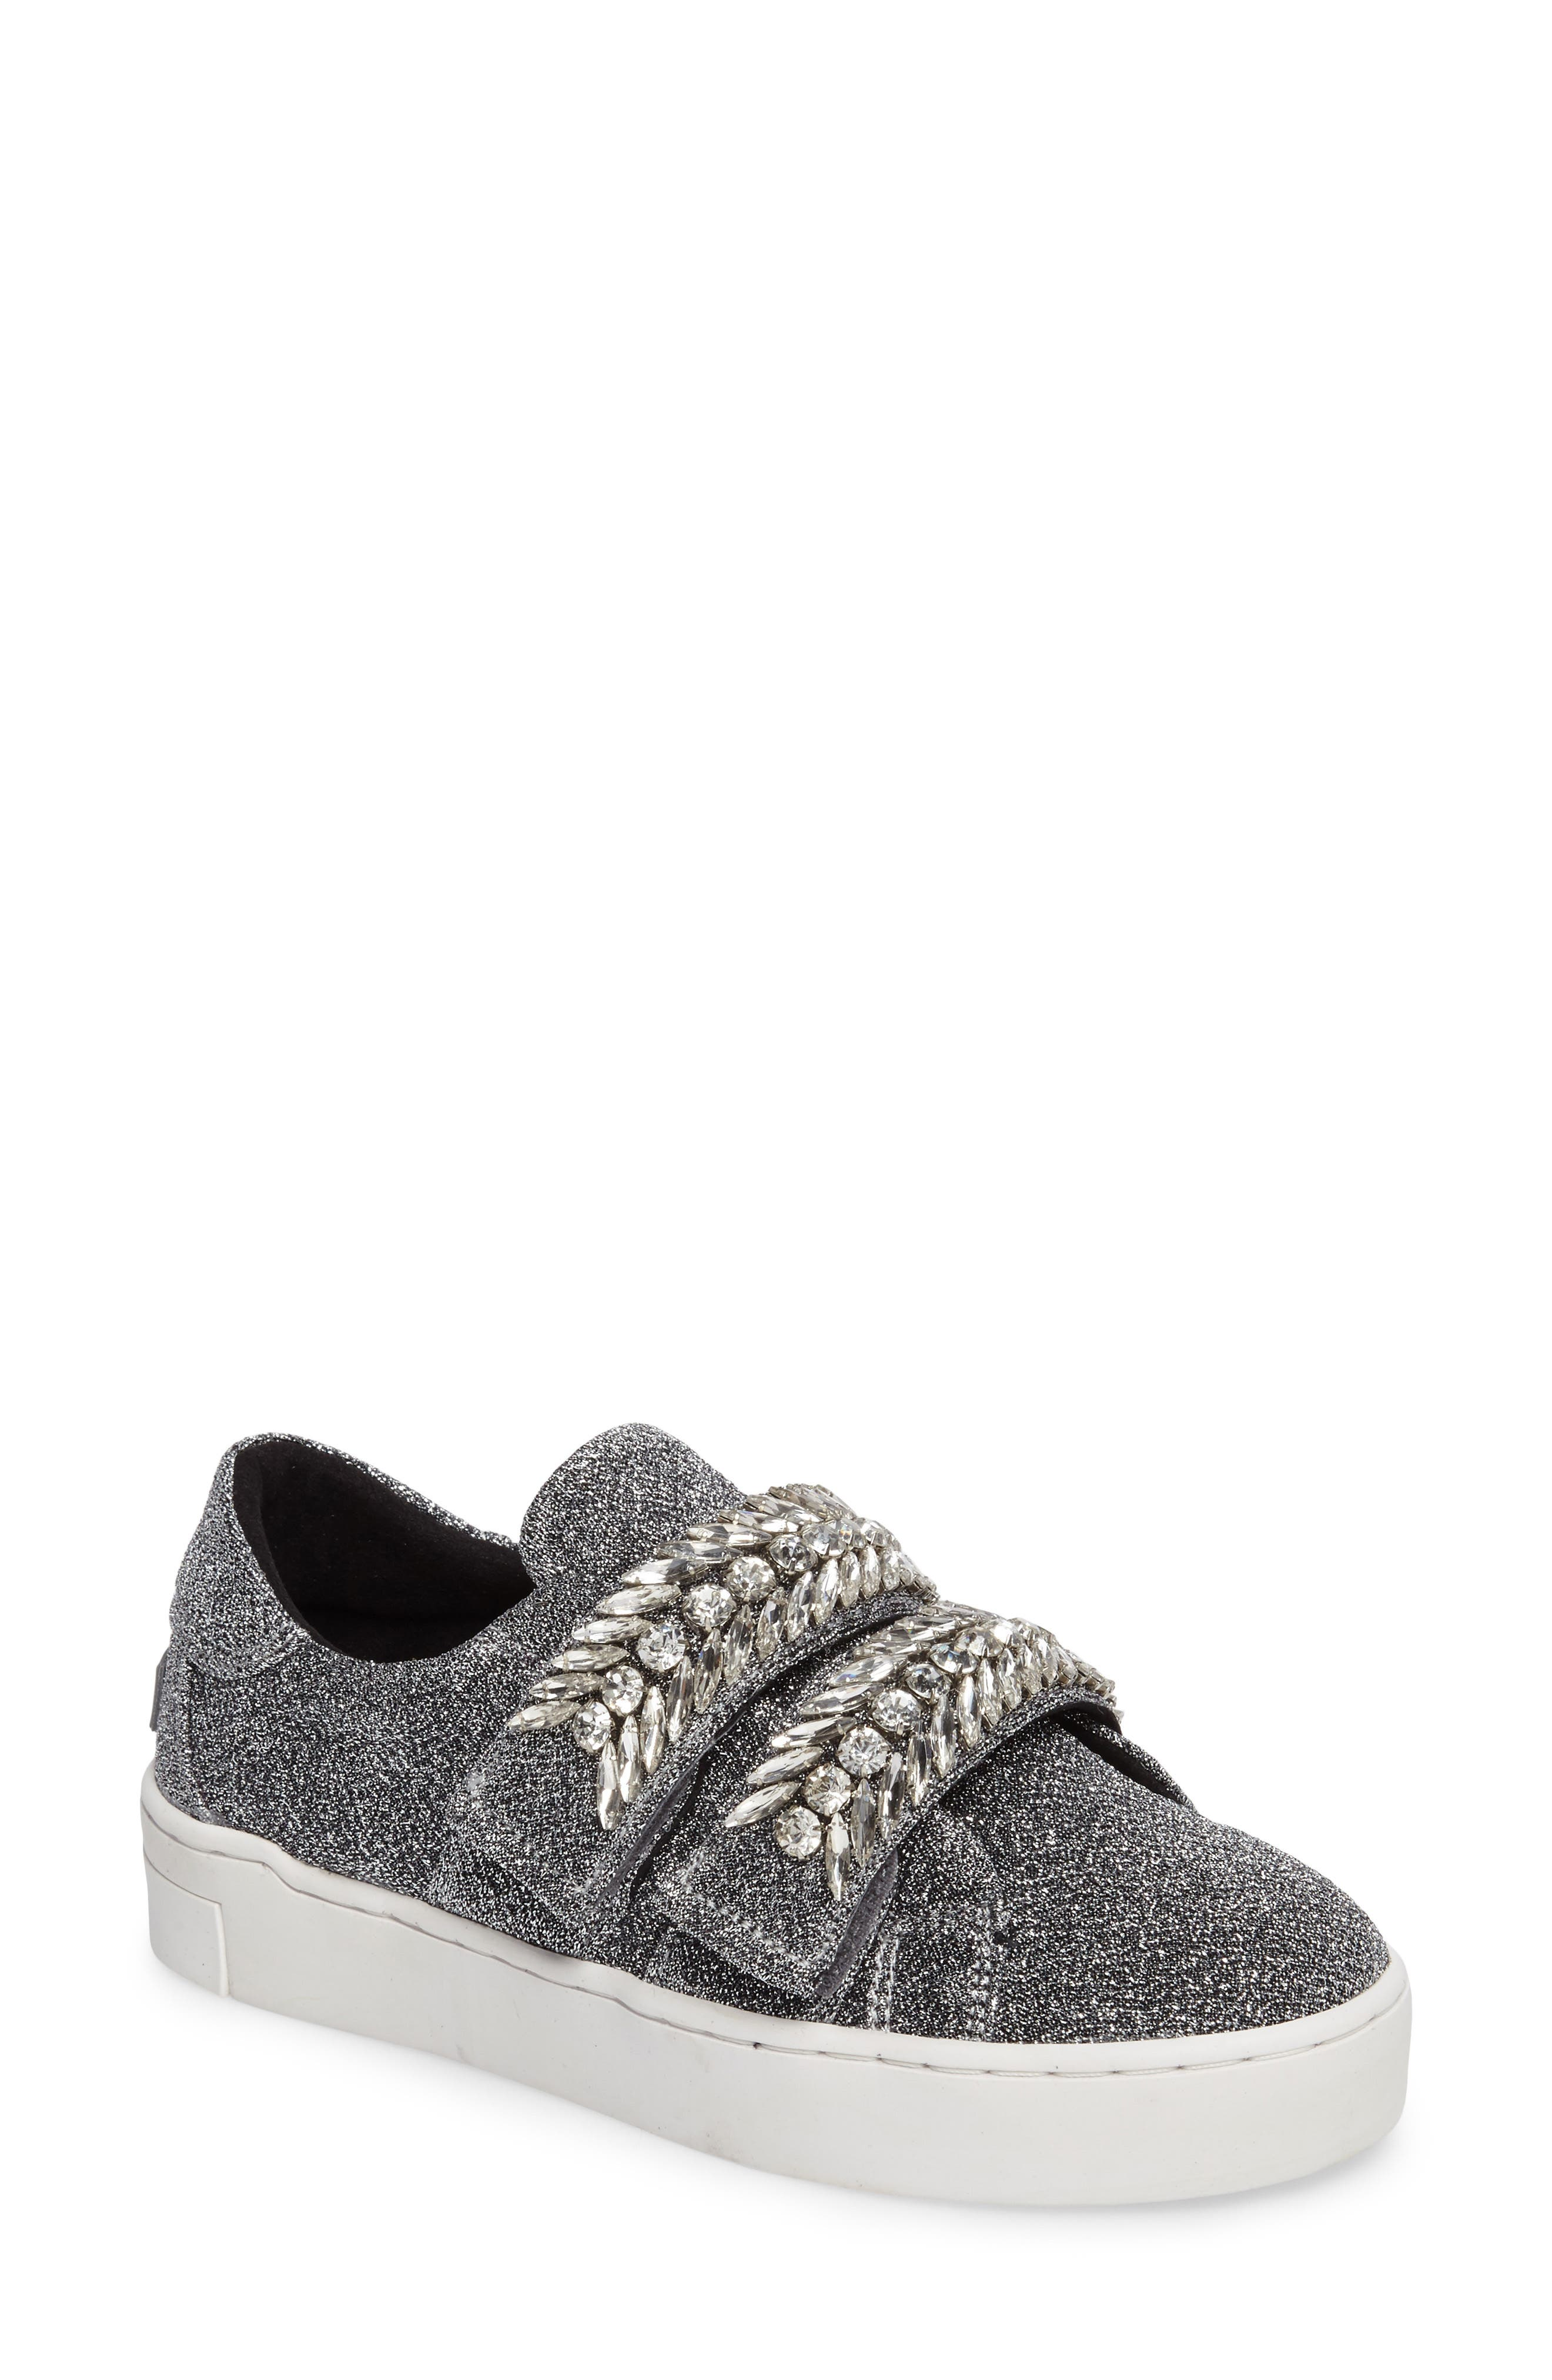 Crystal Embellished Sneaker,                             Main thumbnail 1, color,                             Silver